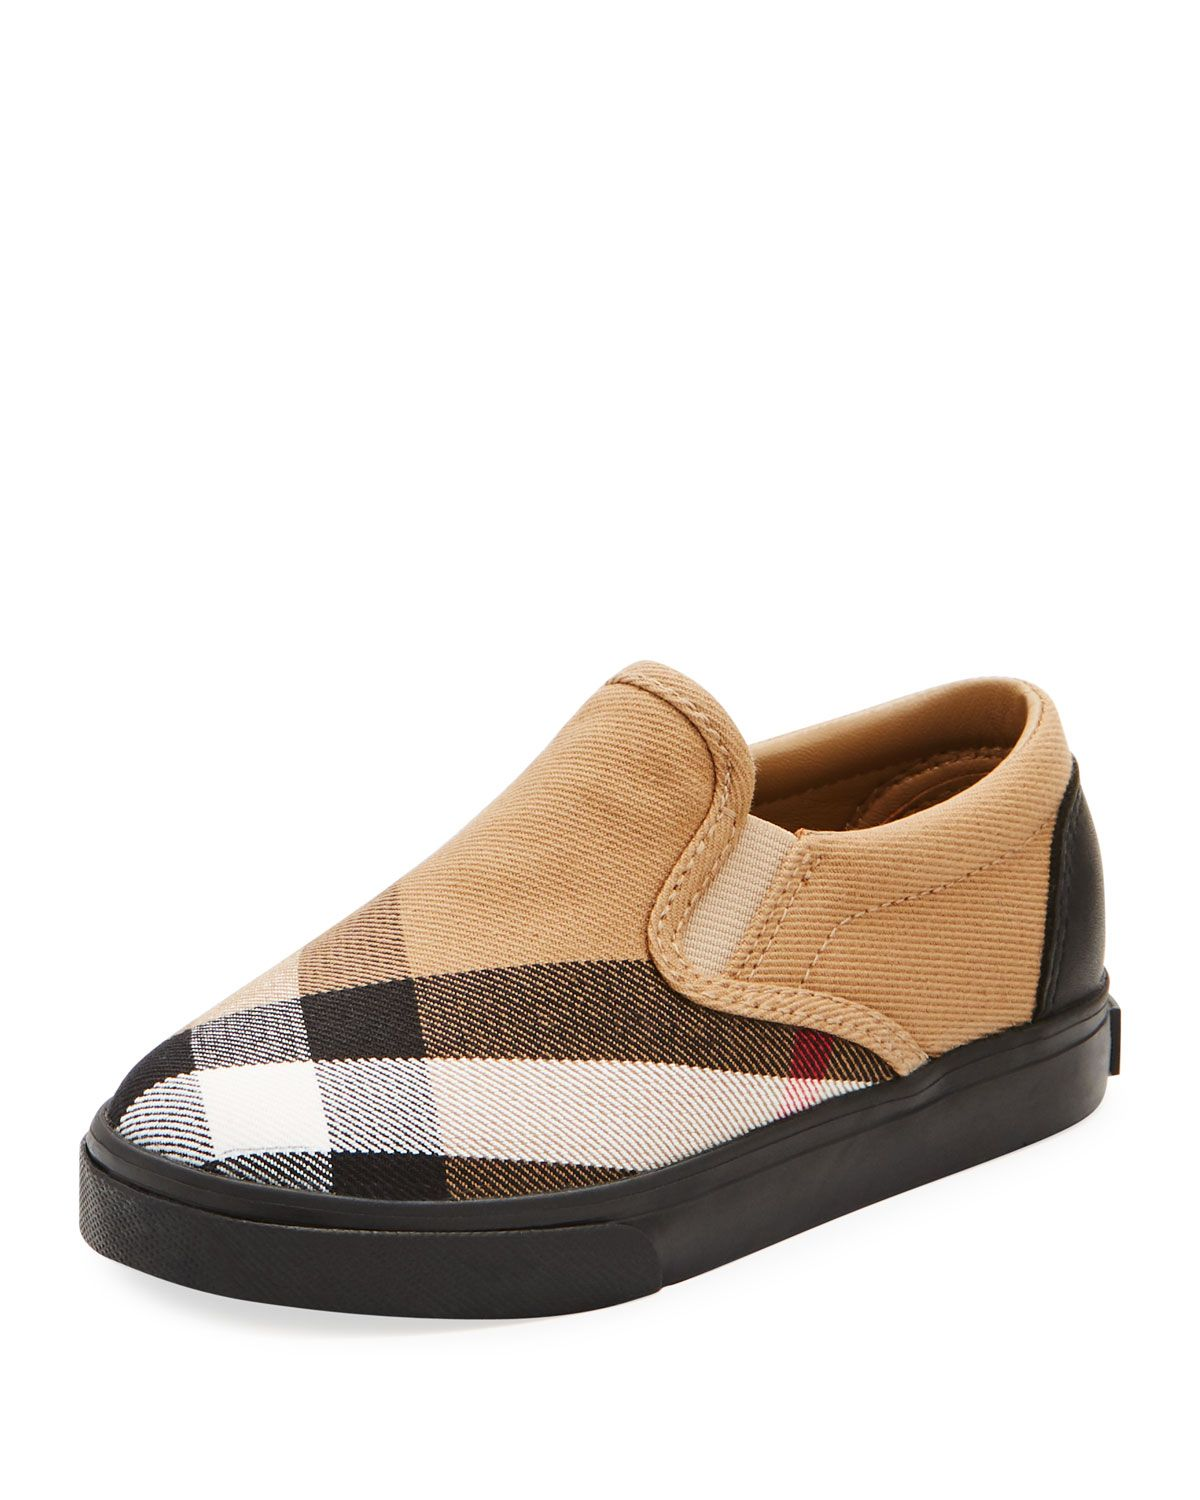 916b454af5cd BURBERRY . #burberry #shoes #   Burberry   Sneaker boots, Sneakers ...